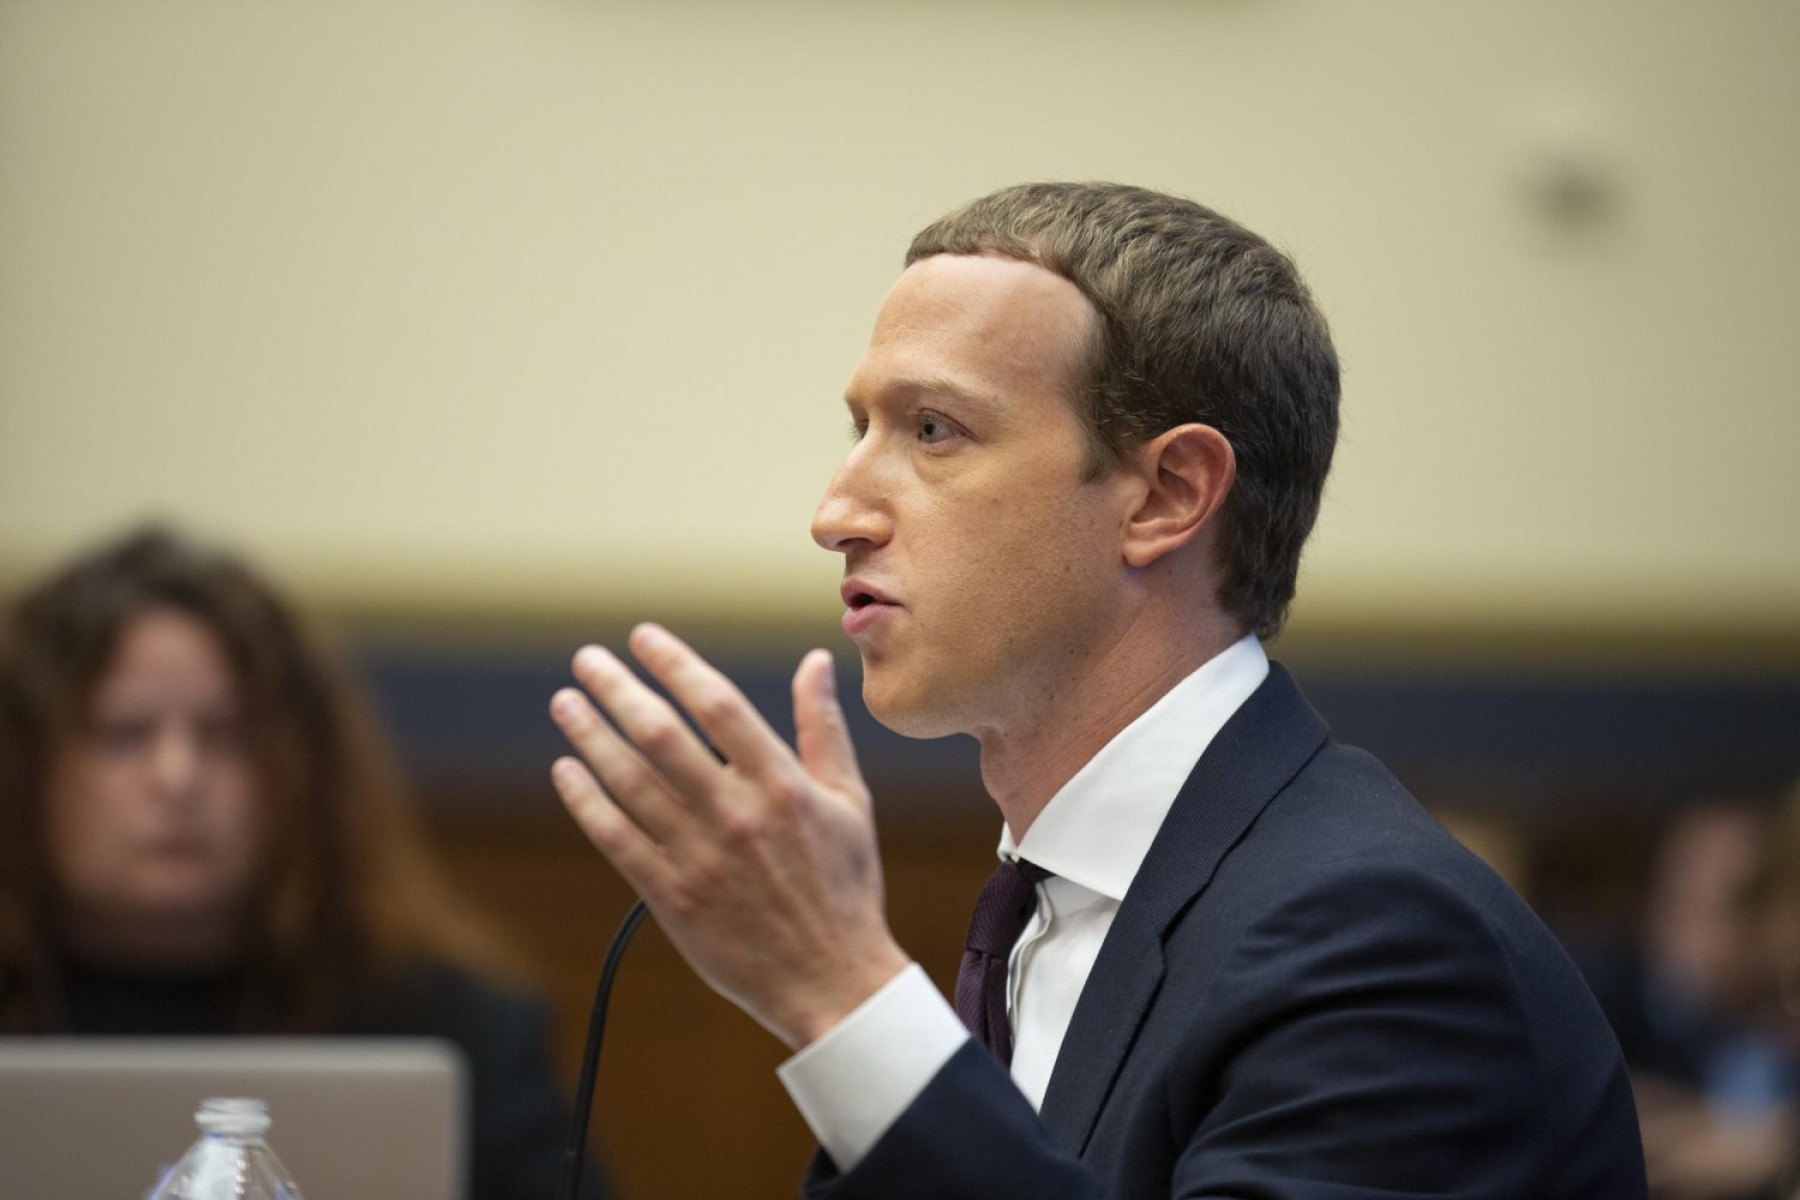 Septima Vector Young: Mark Zuckerberg And The Changing Civil Rights Movement